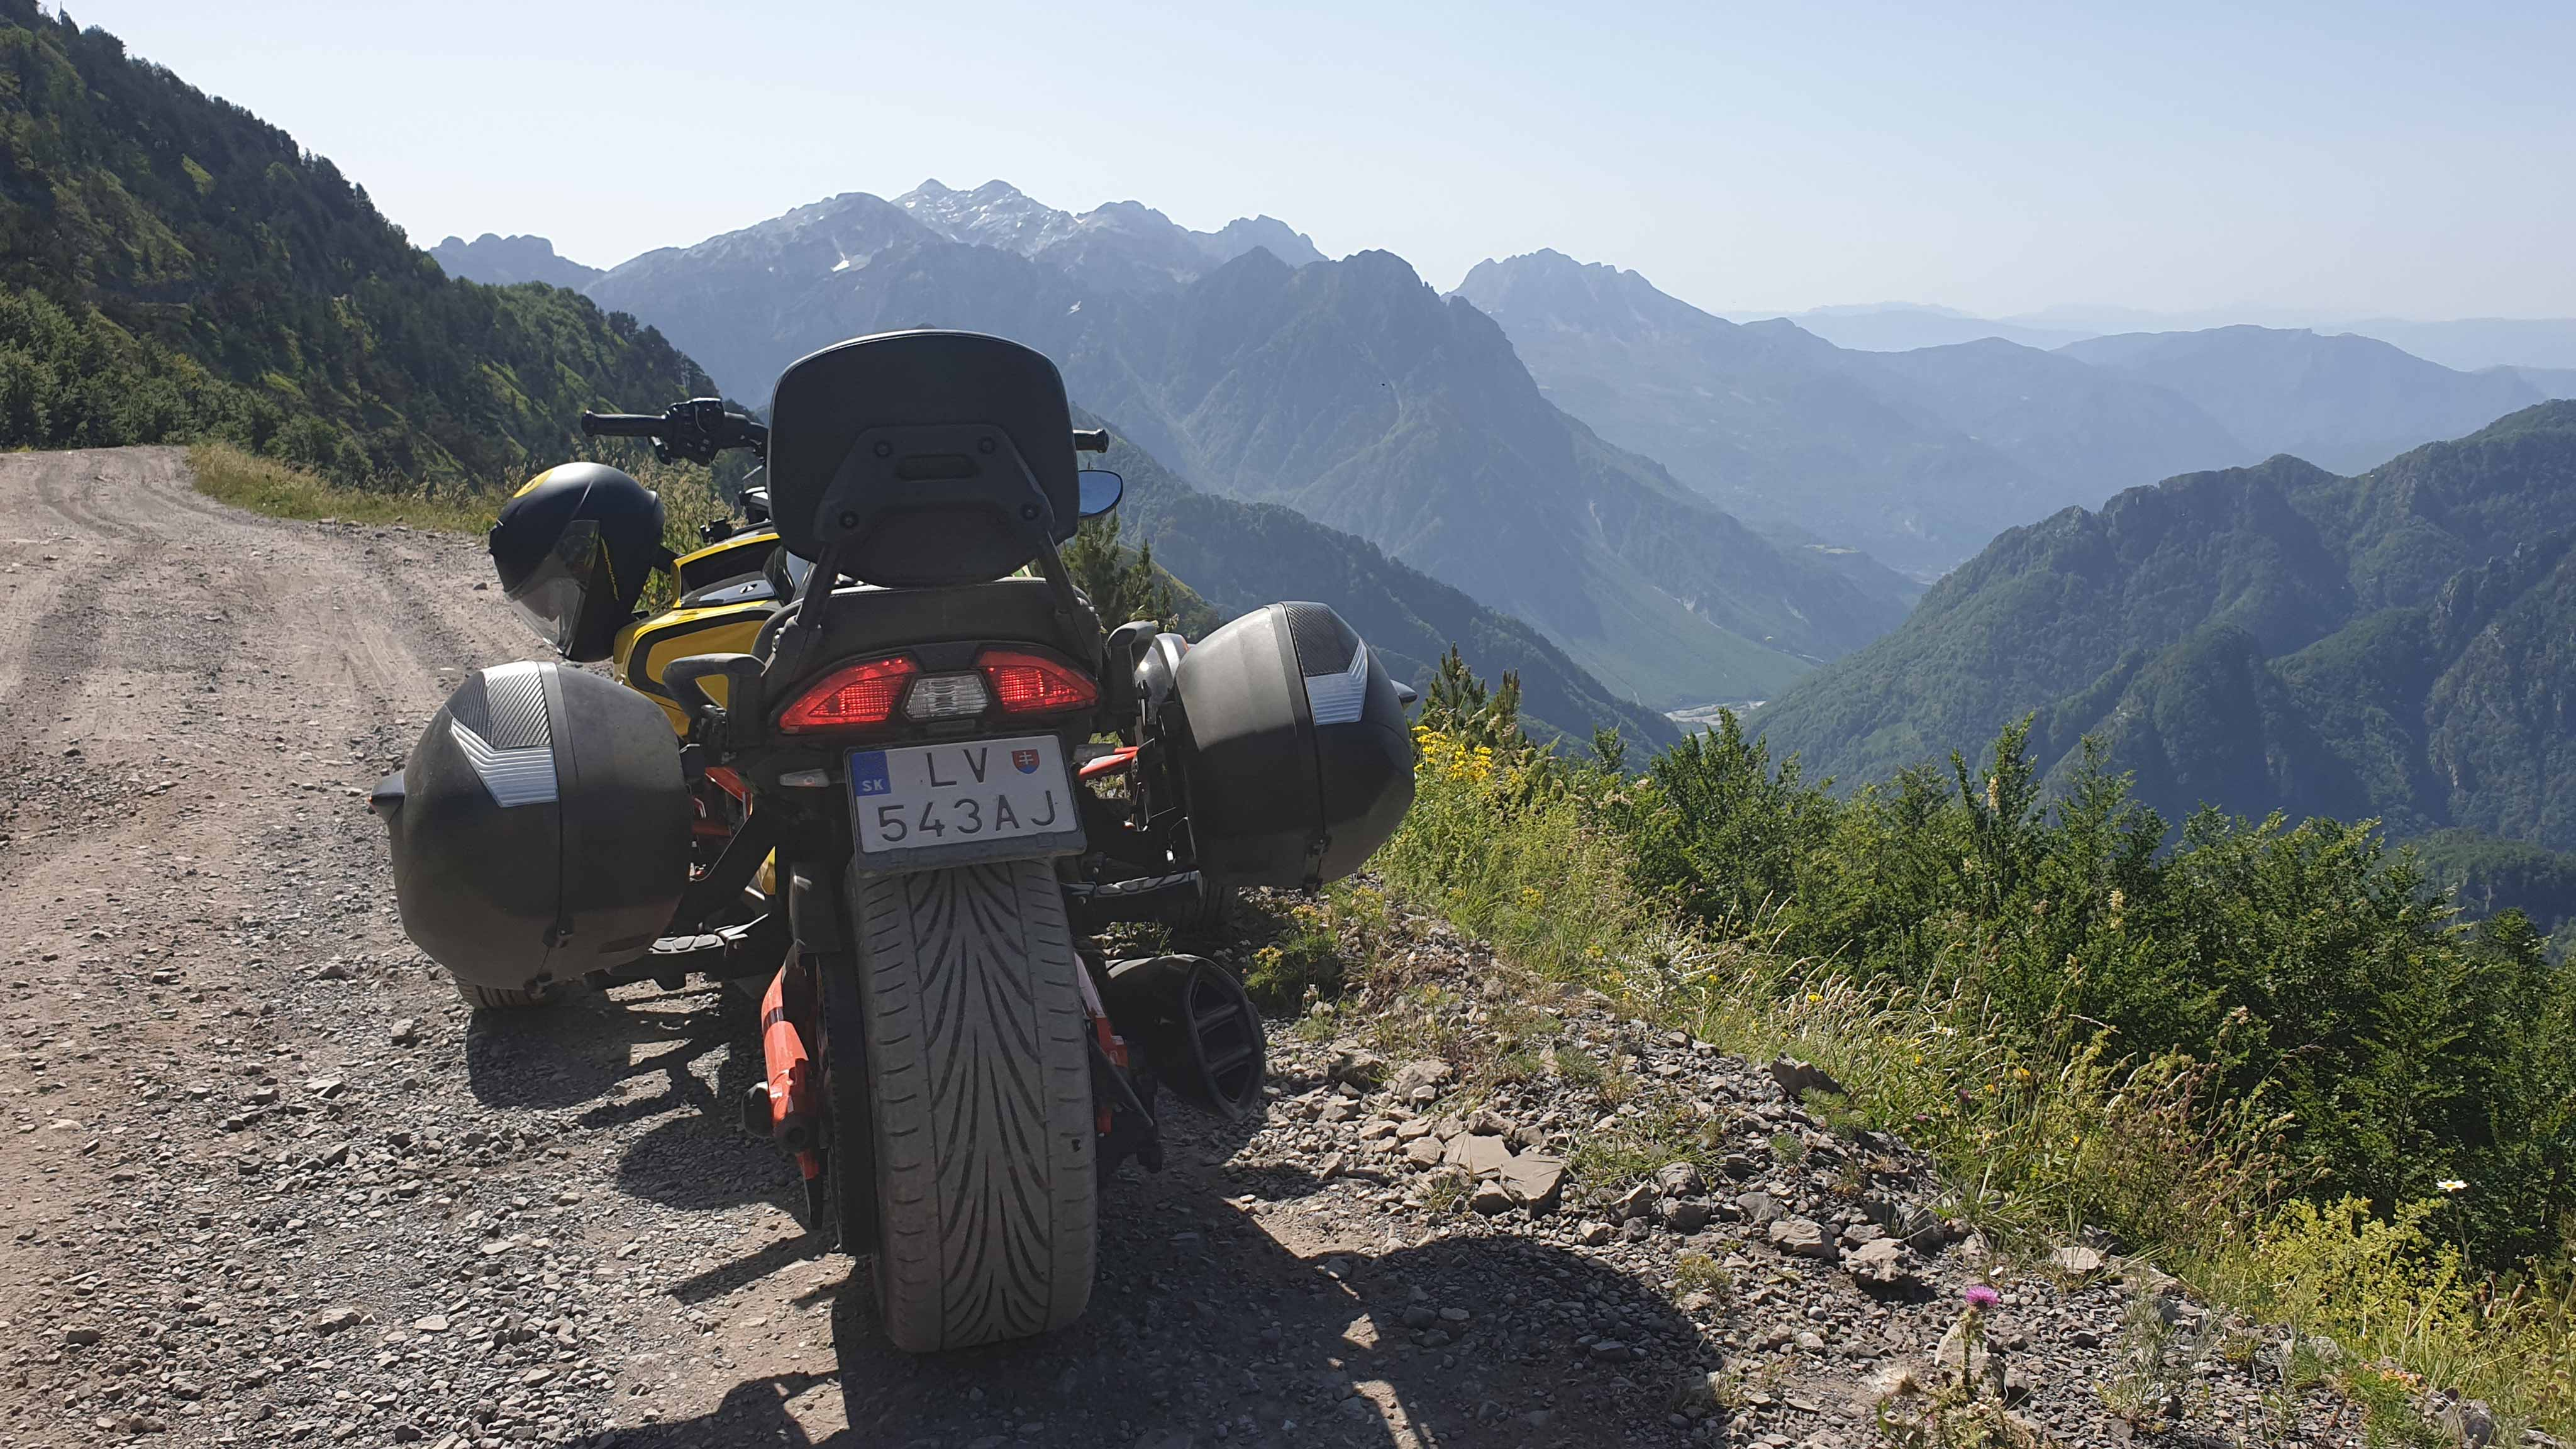 Martin the Vlogger's Can-Am Spyder F3 on top of a mountain